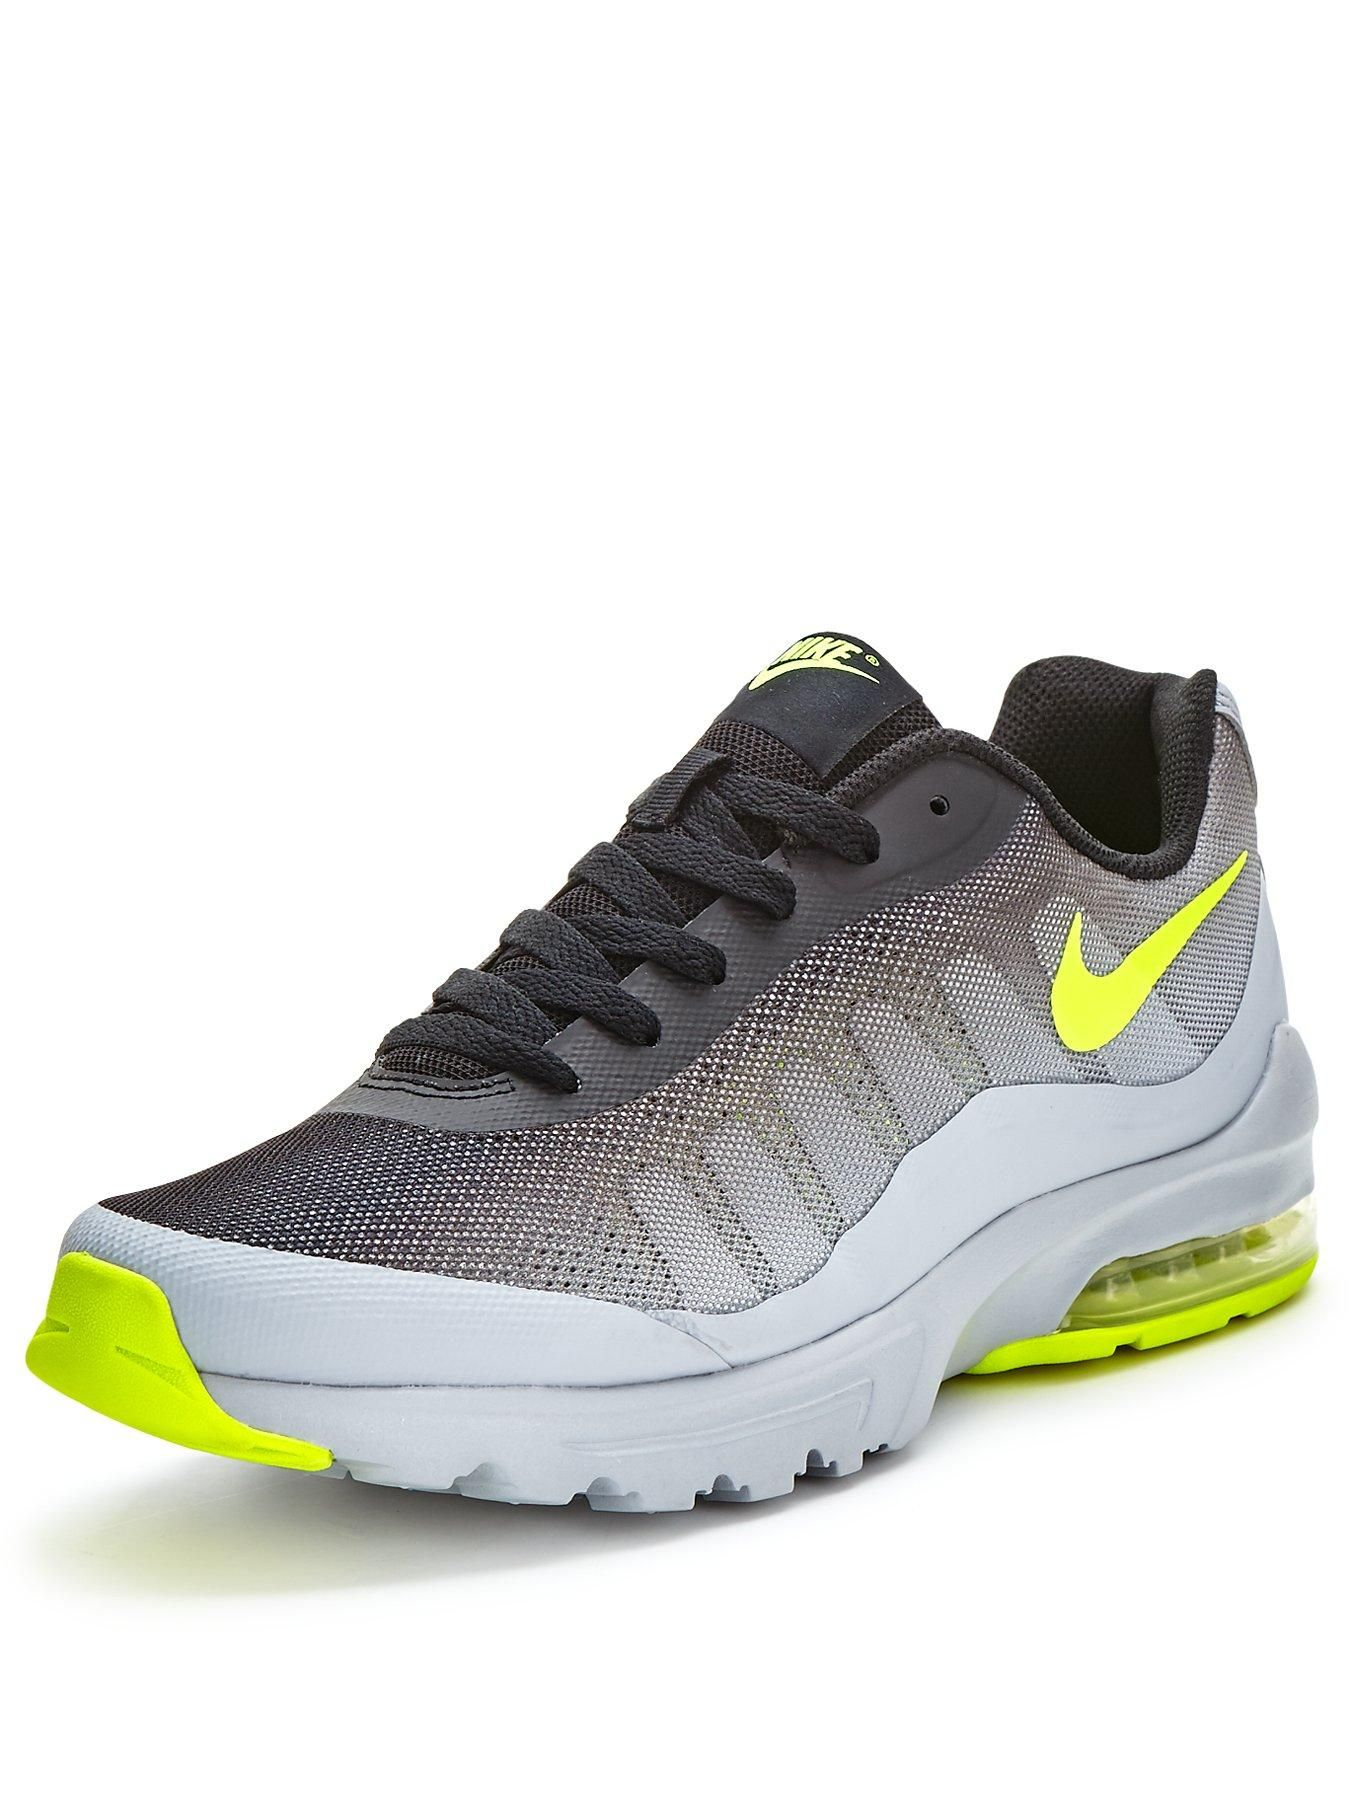 dde19fde56e7 Nike Air Max Invigor Print Mens Trainers